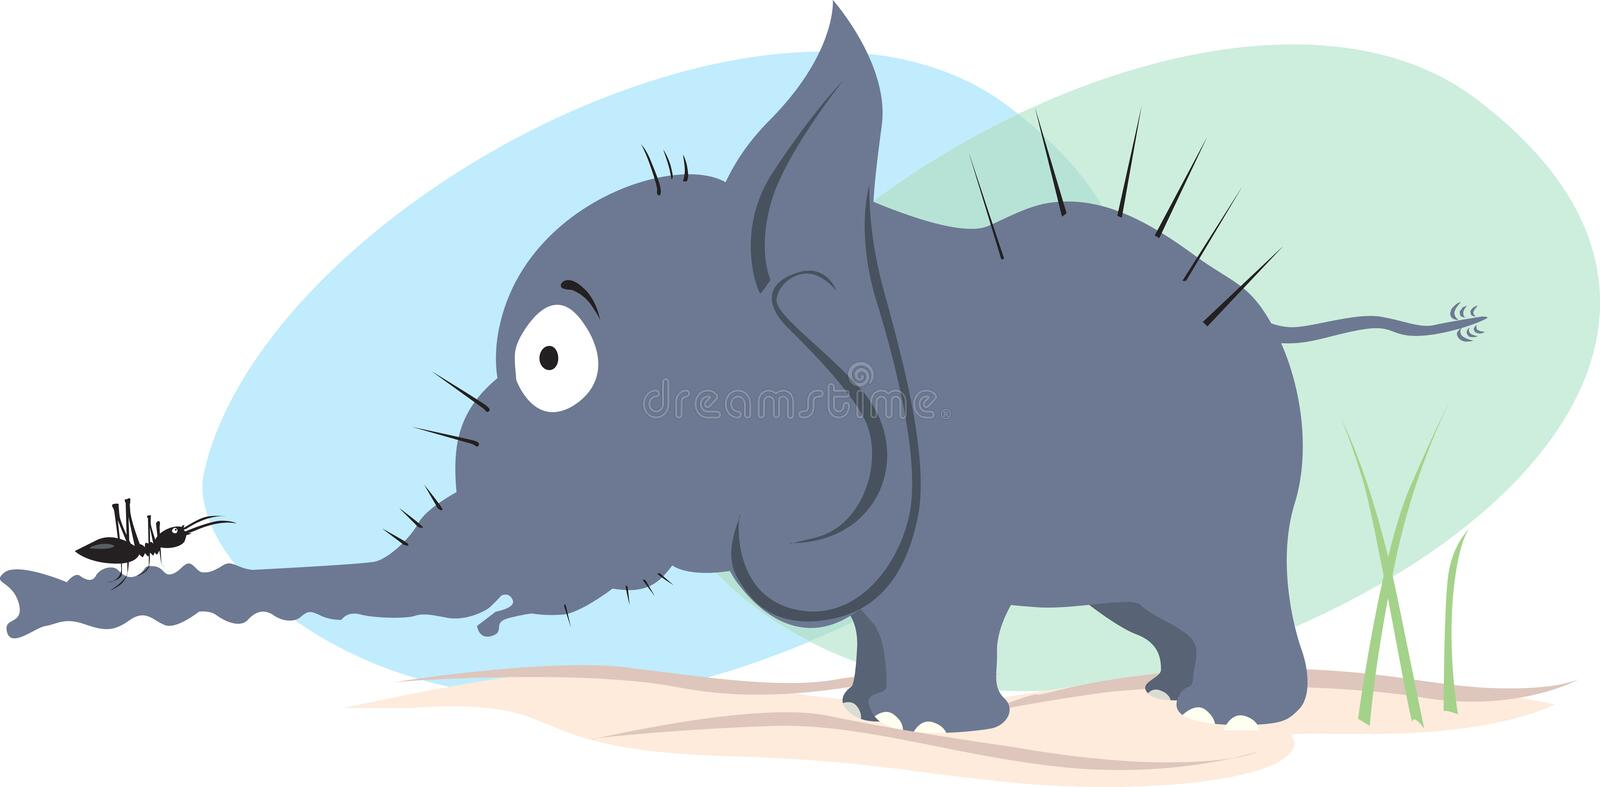 Elephant And Ant Royalty Free Stock Photography